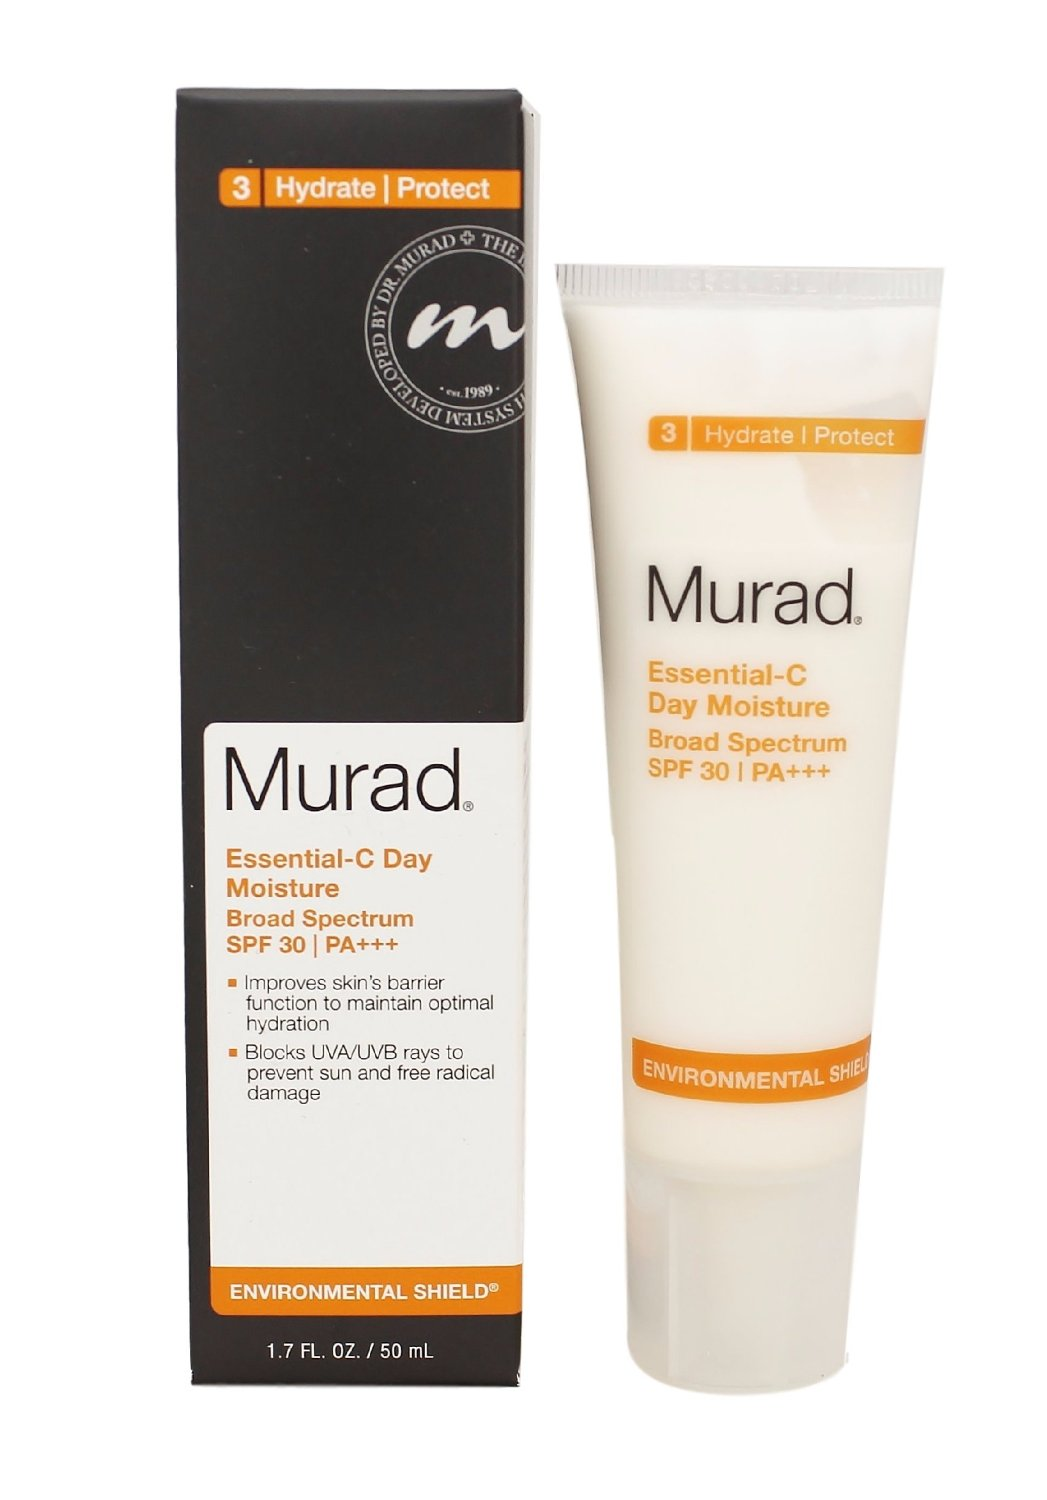 Murad Essential-C Day Moisture Broad Spectrum SPF 30